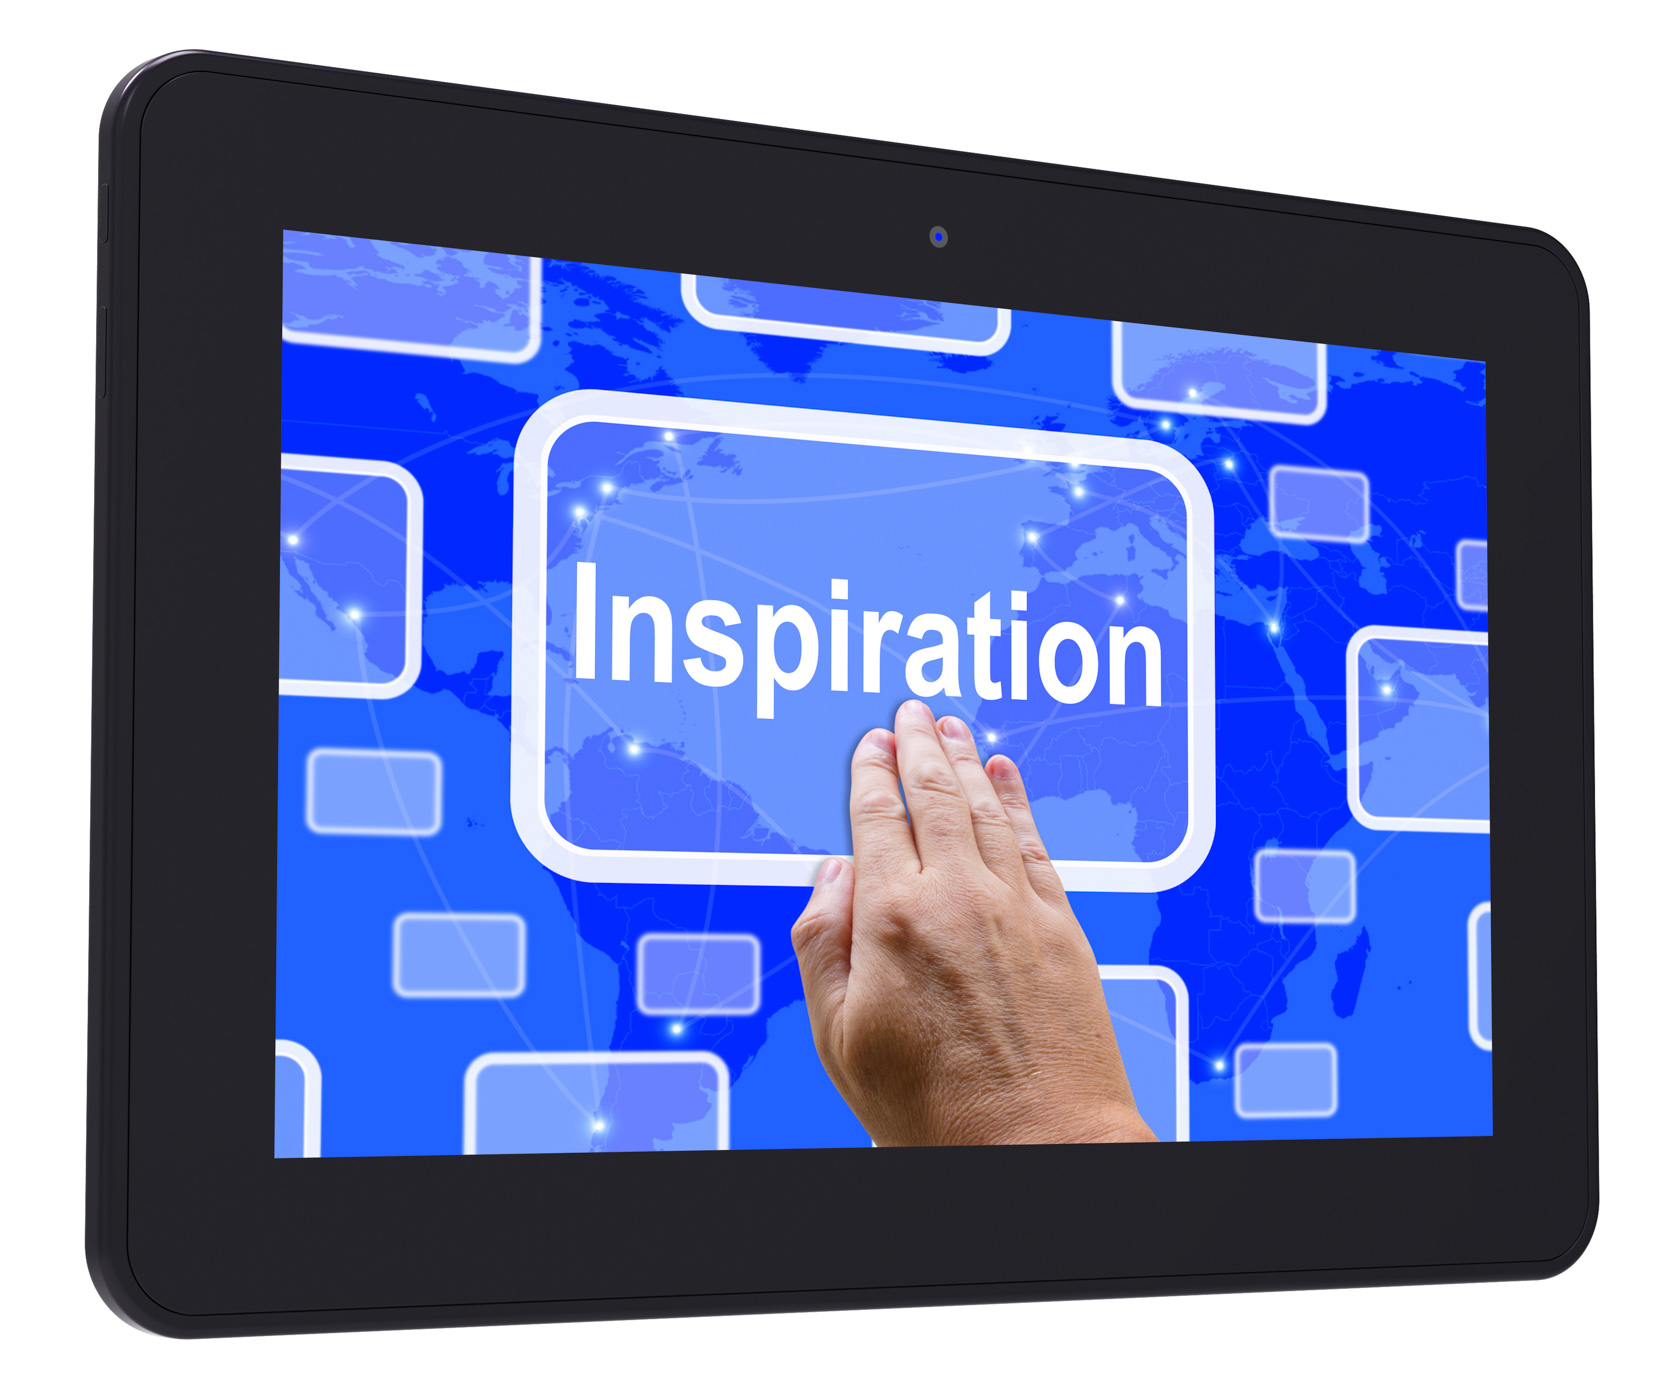 Inspiration tablet touch screen shows motivation and encouragement photo